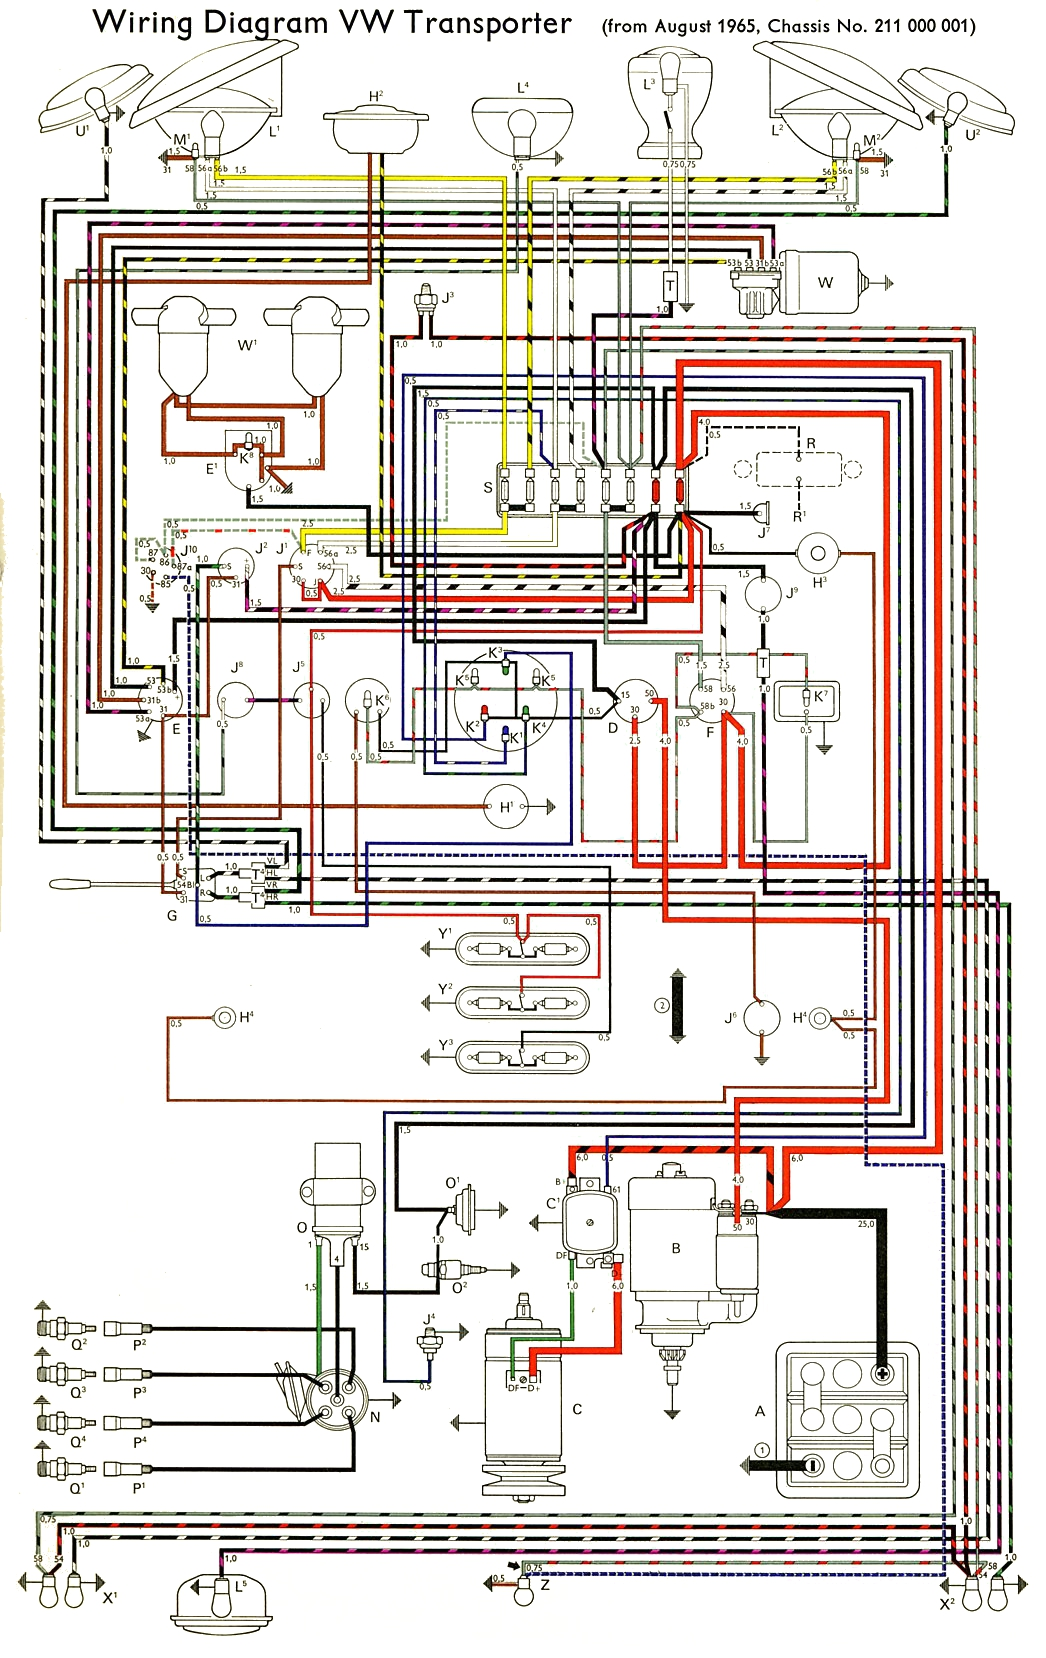 1962 vw bug wiring diagram 66 vw bug wire diagram of #13